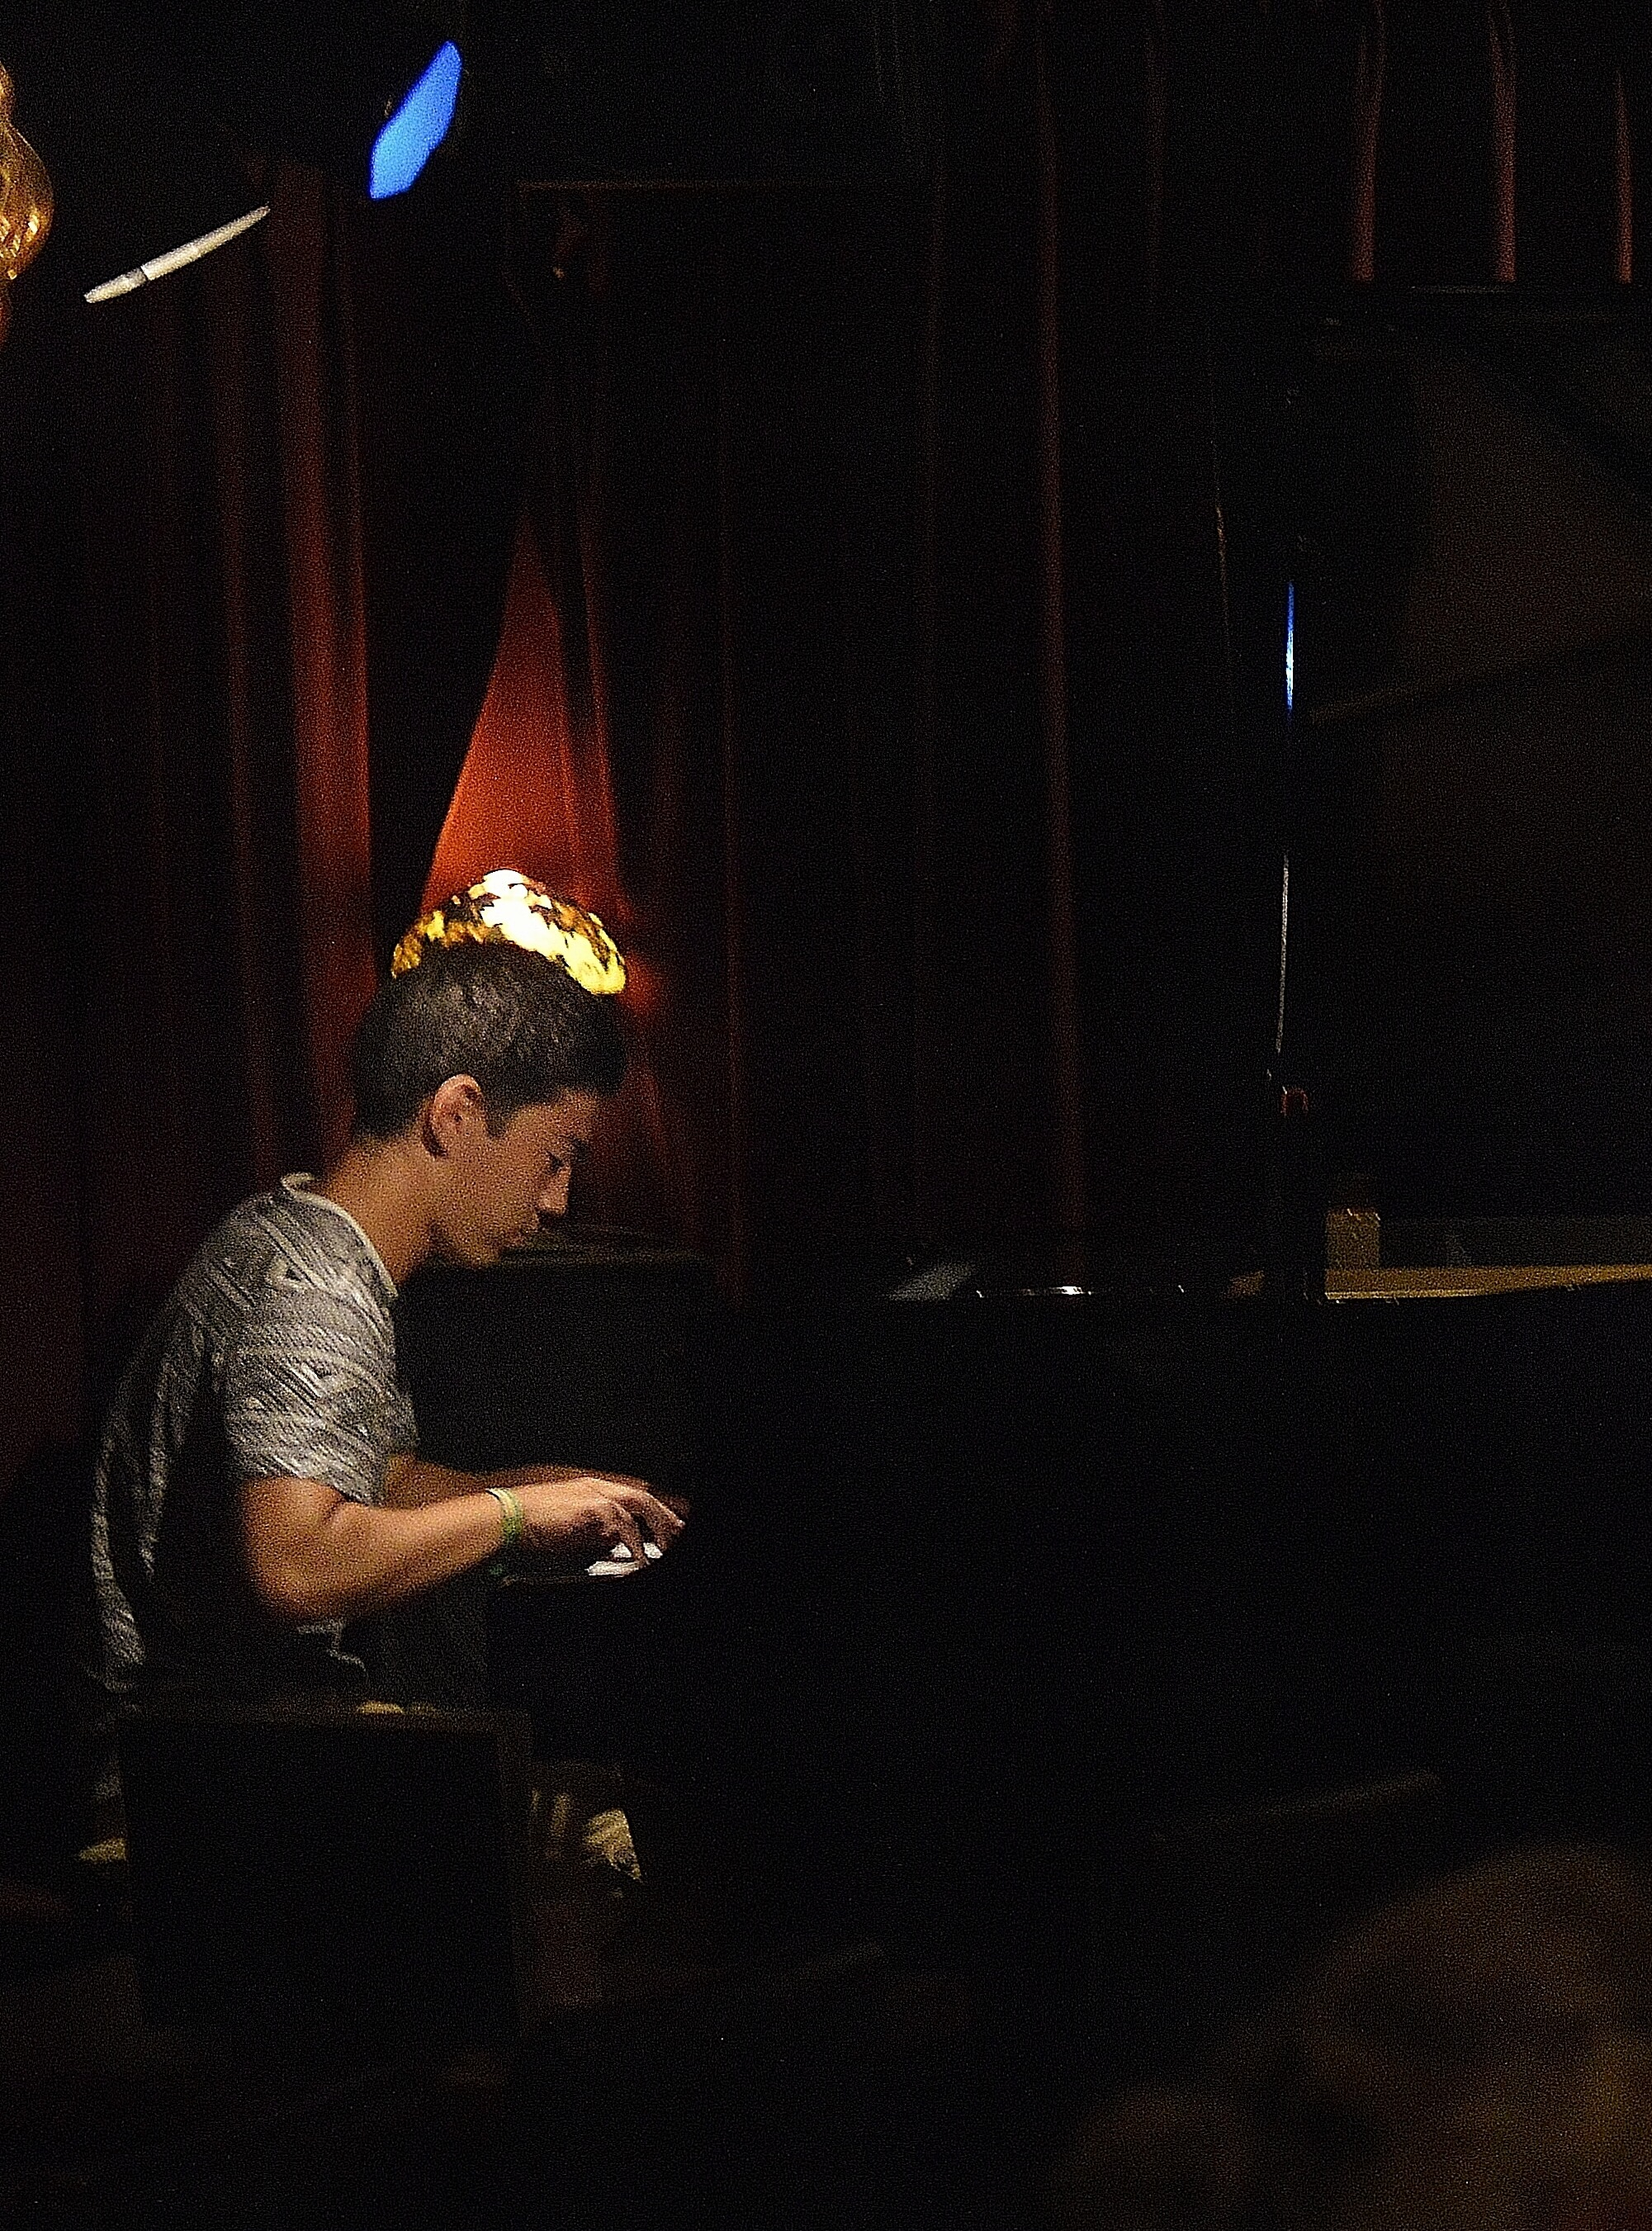 13.06.2018 at 20:00 h &ndash; Bar-Jazz FoH: Robbi Nakayama Trio <a href='index.php?LL=UK&zeige=events&sub=bjfoh'><img src='picts/moreinfo.jpg' alt='More information' width='20' height='12' align='absmiddle' /></a>